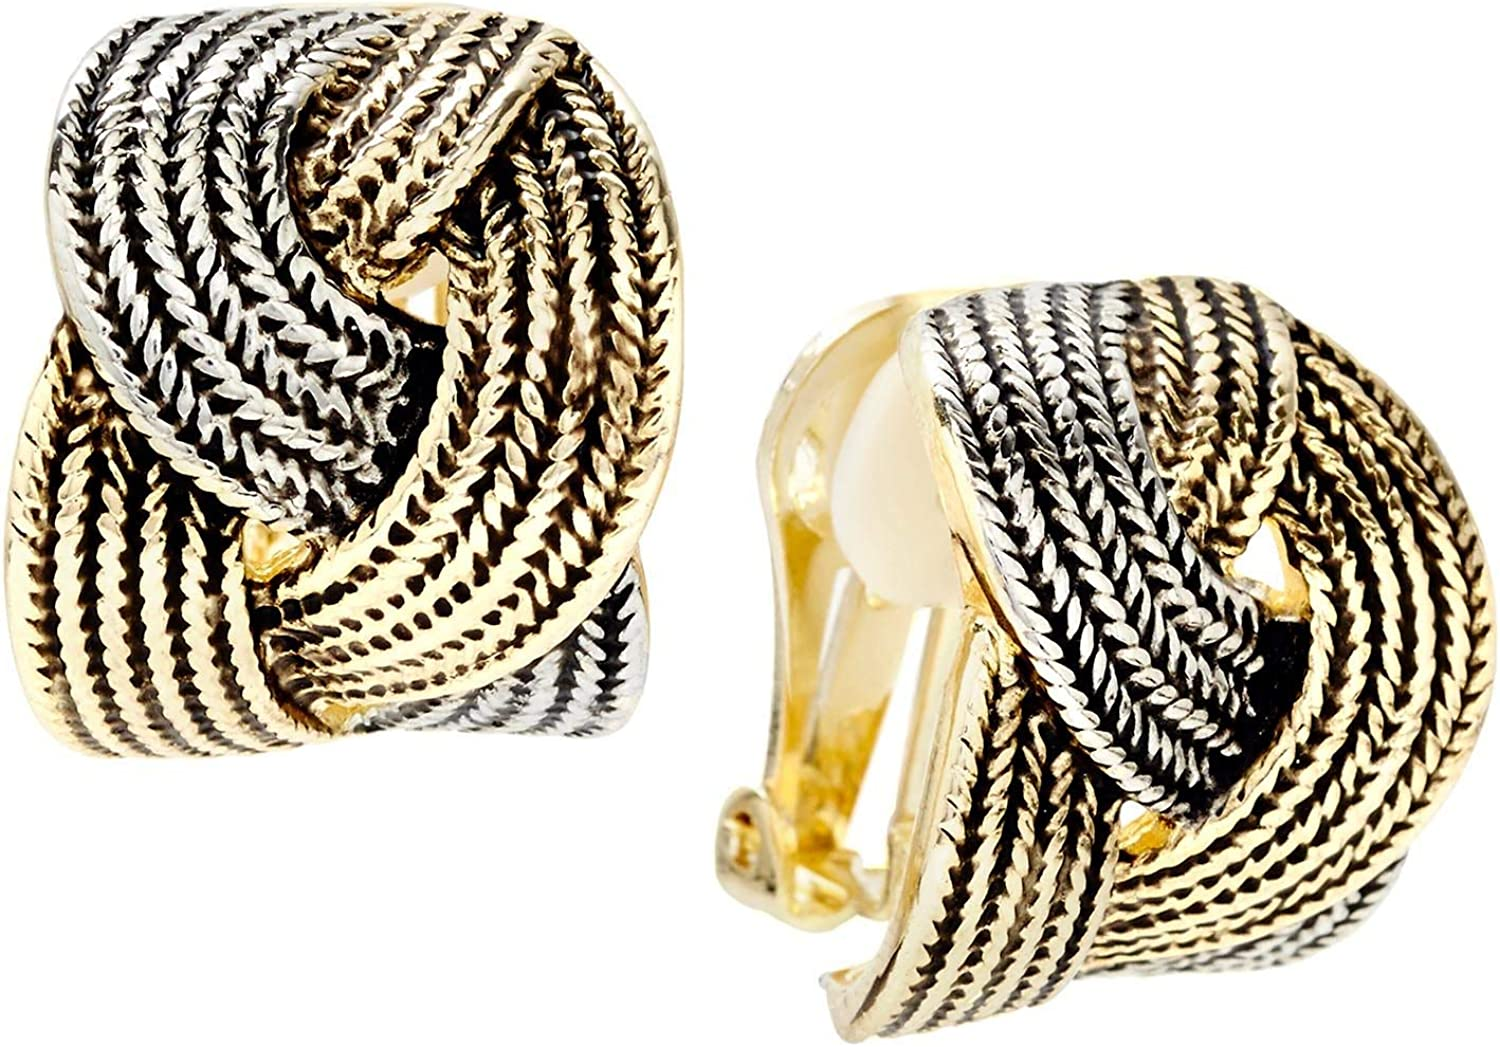 Misook Clip On Two-Tone Earrings with Interlocking Braid for Women